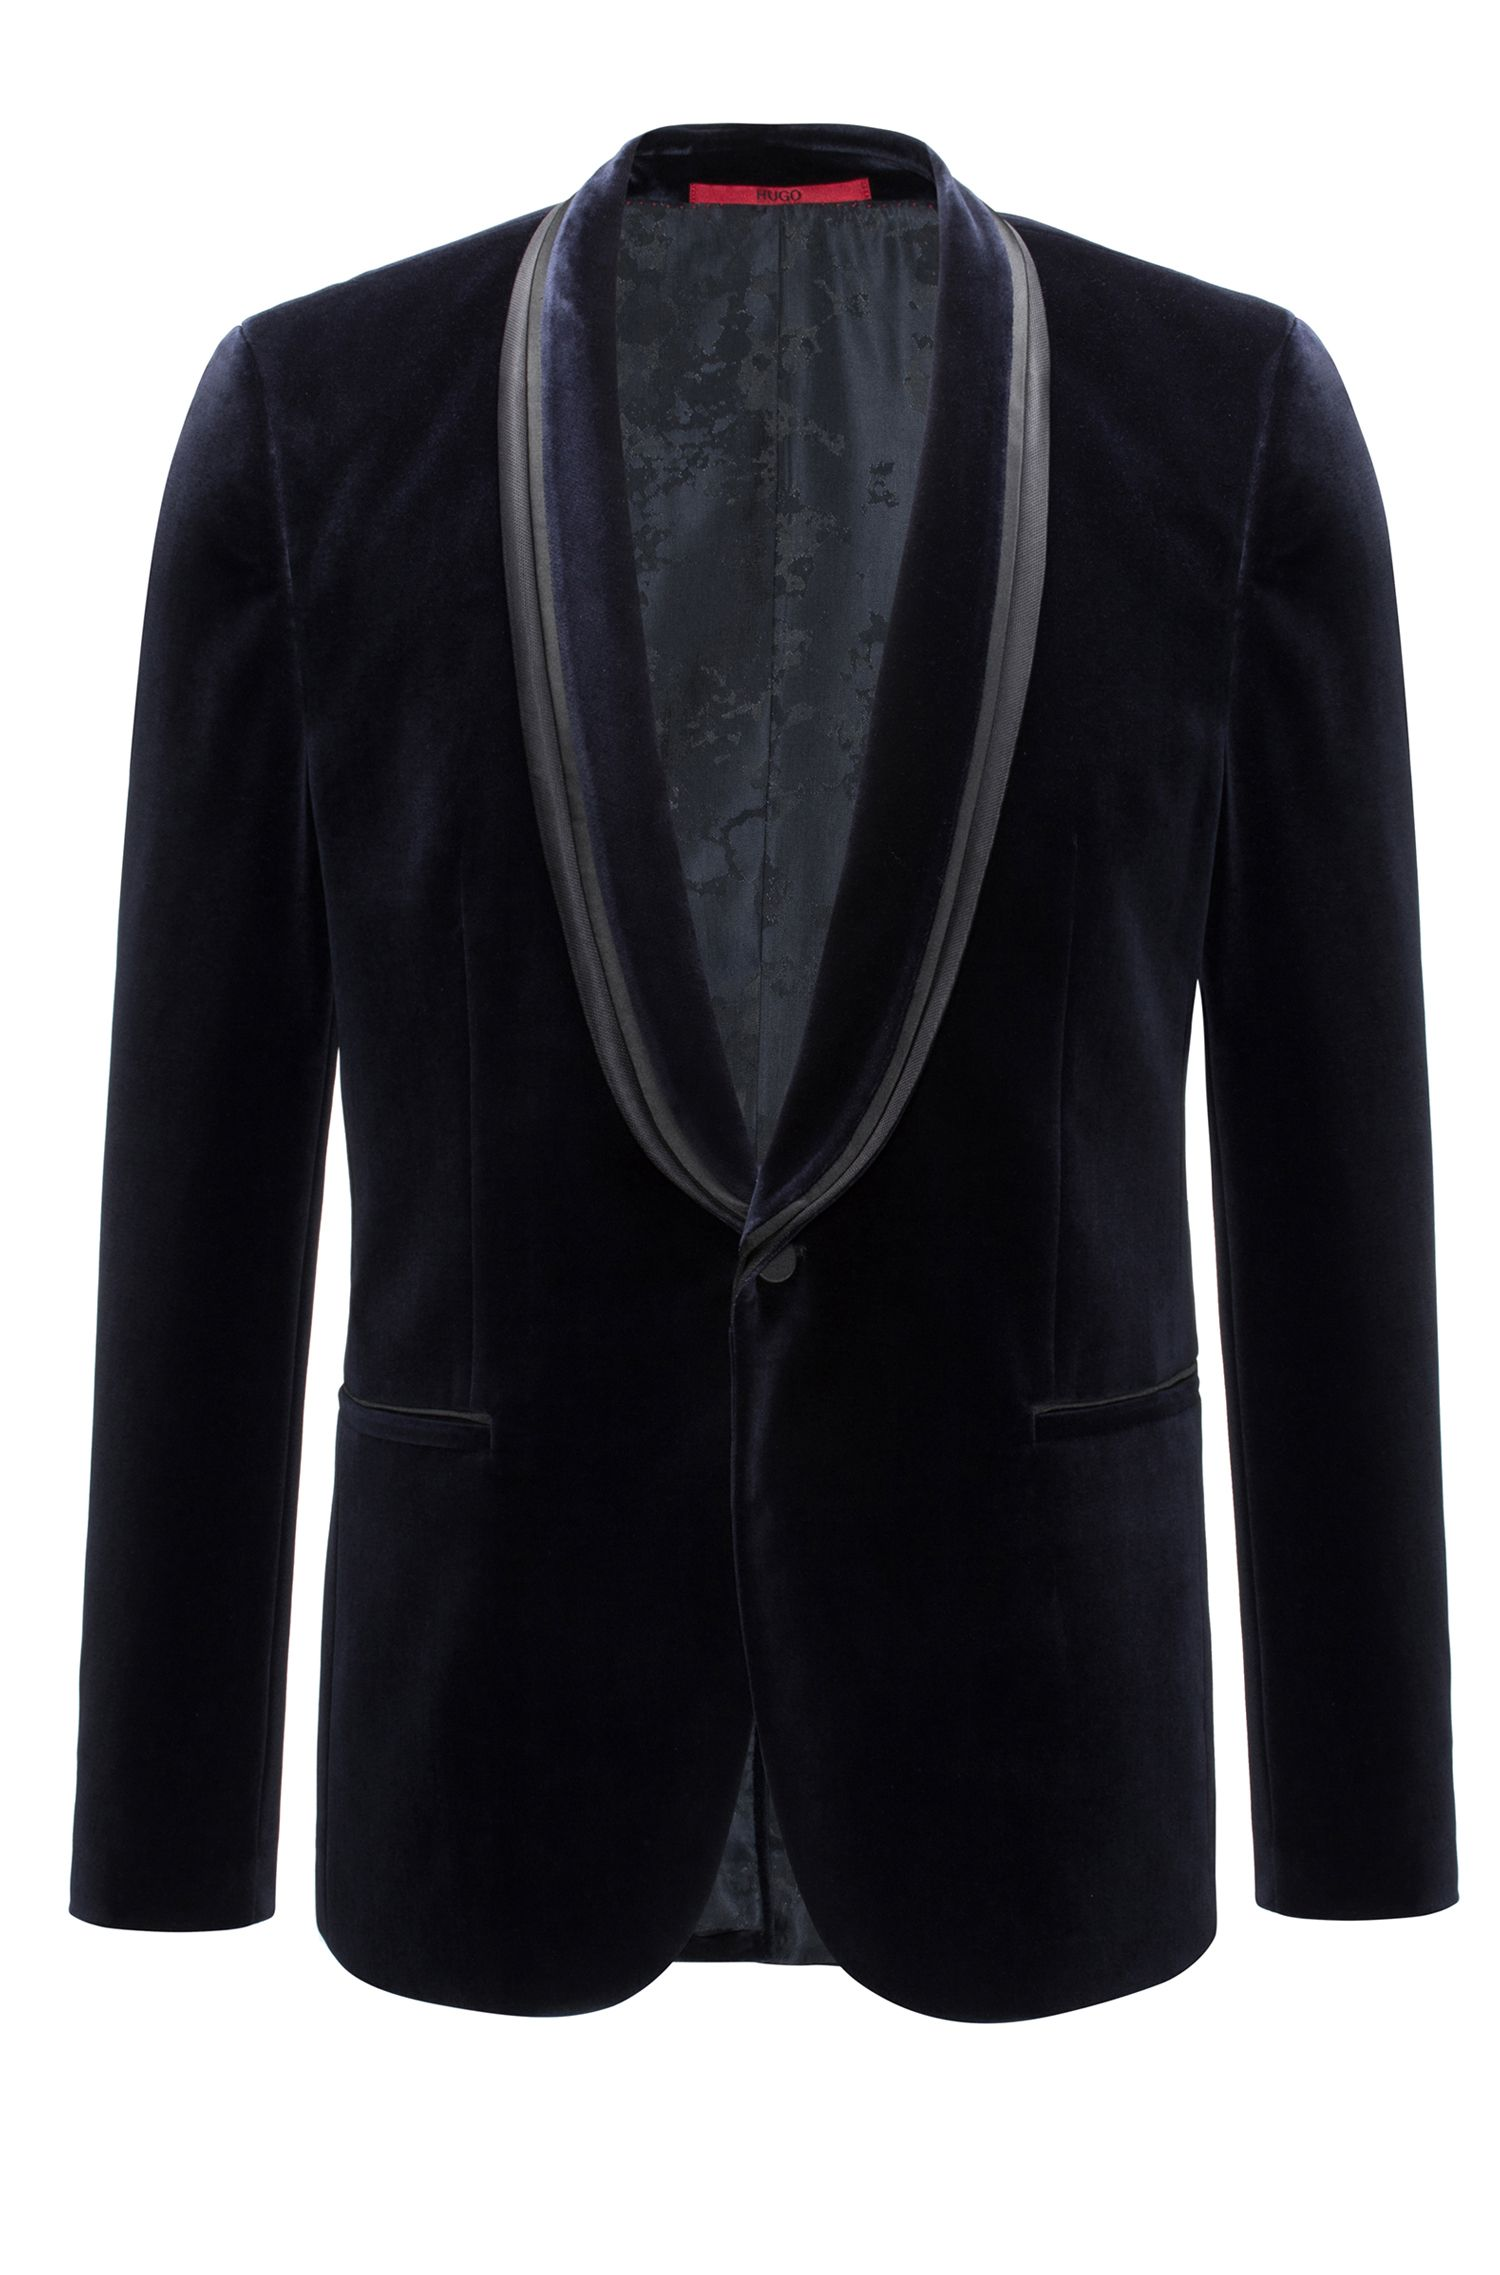 Cotton jacket in an extra-slim fit